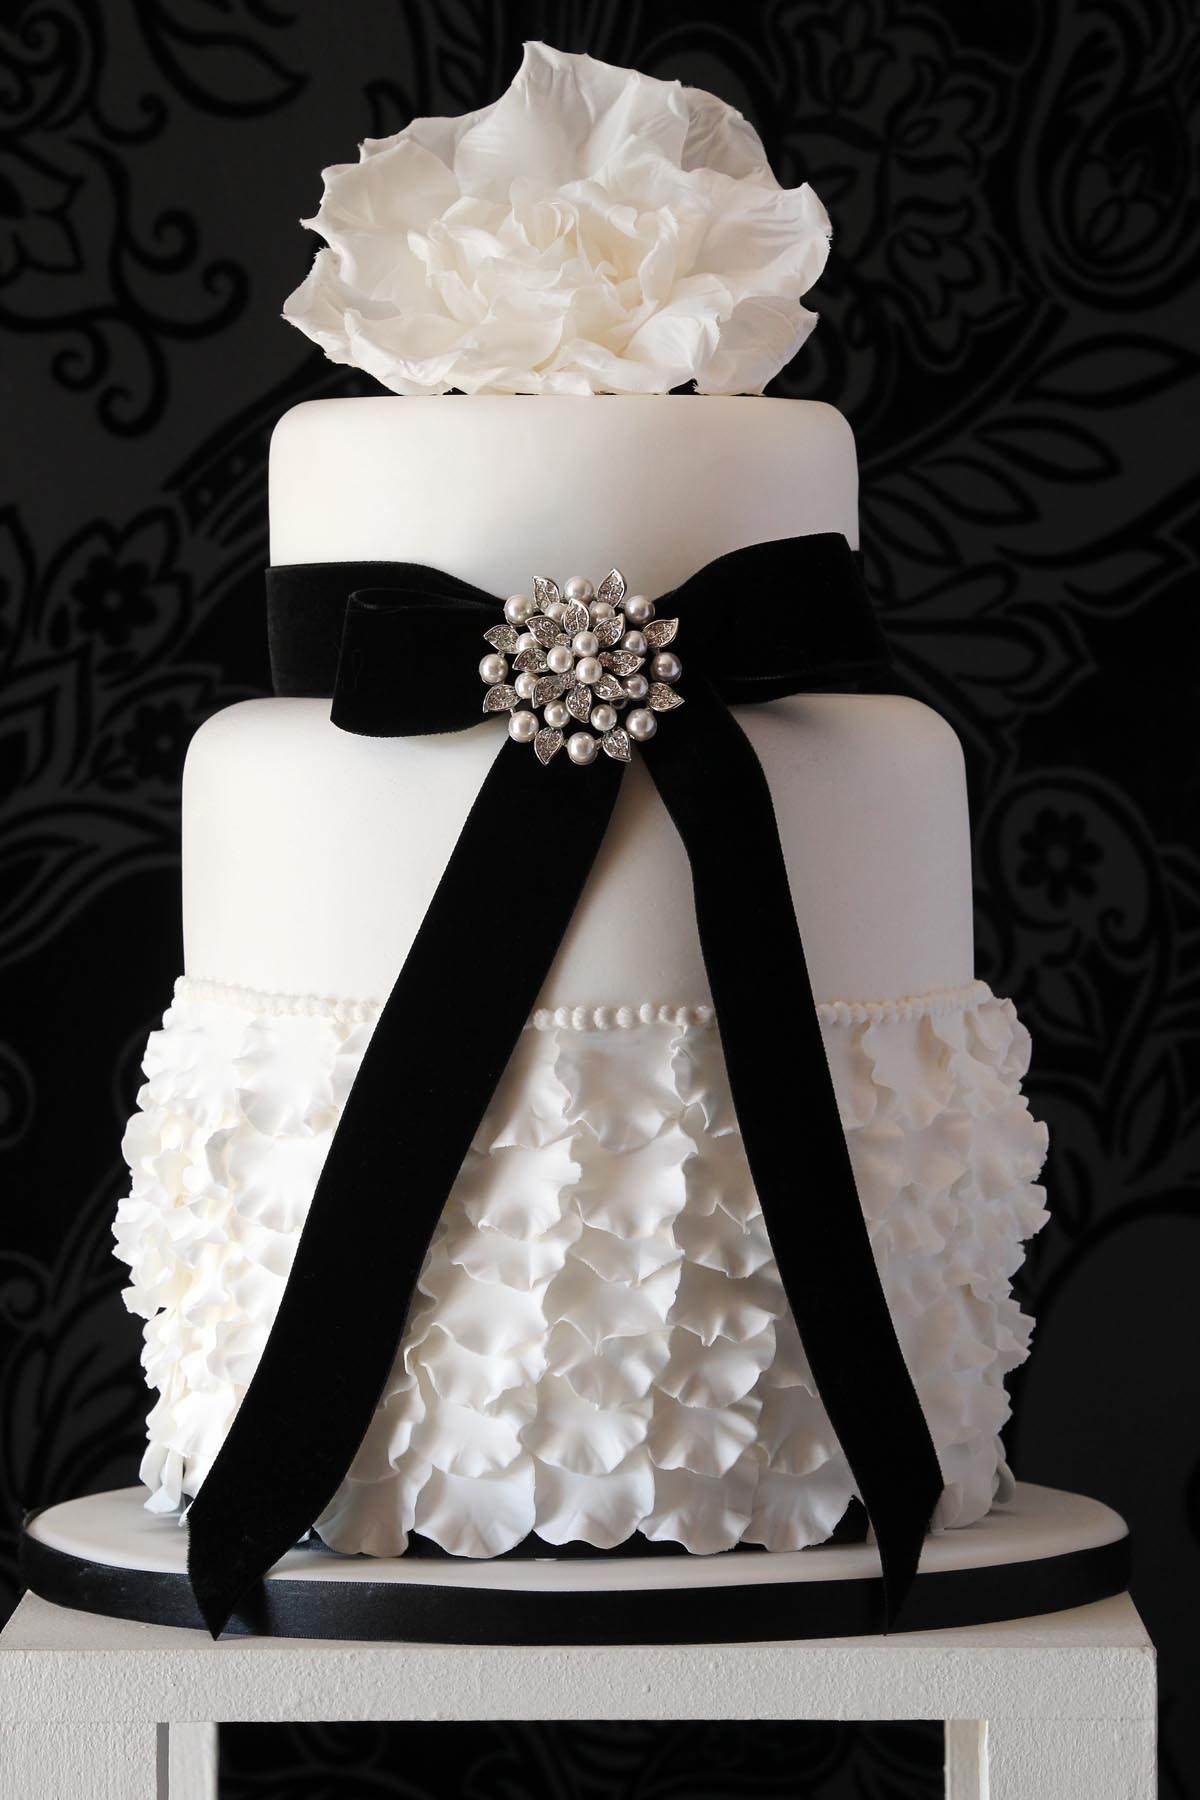 jess hill cakes beautiful designer wedding cakes. Black Bedroom Furniture Sets. Home Design Ideas